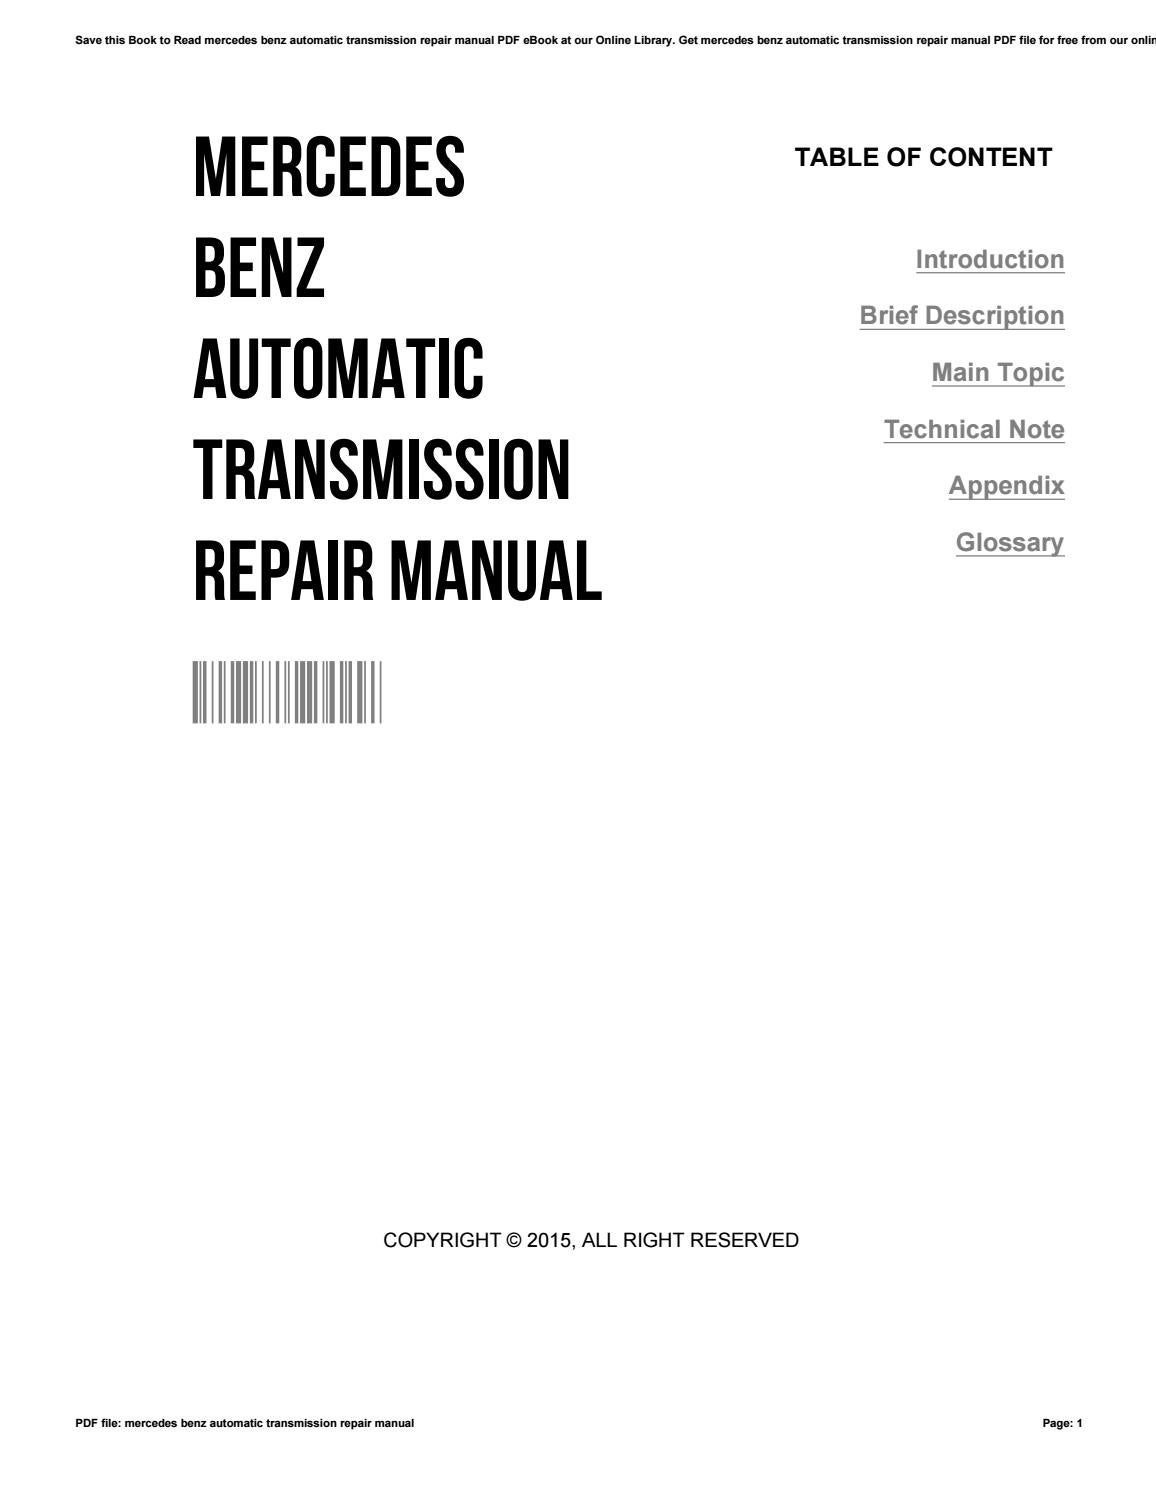 Mercedes benz automatic transmission repair manual by